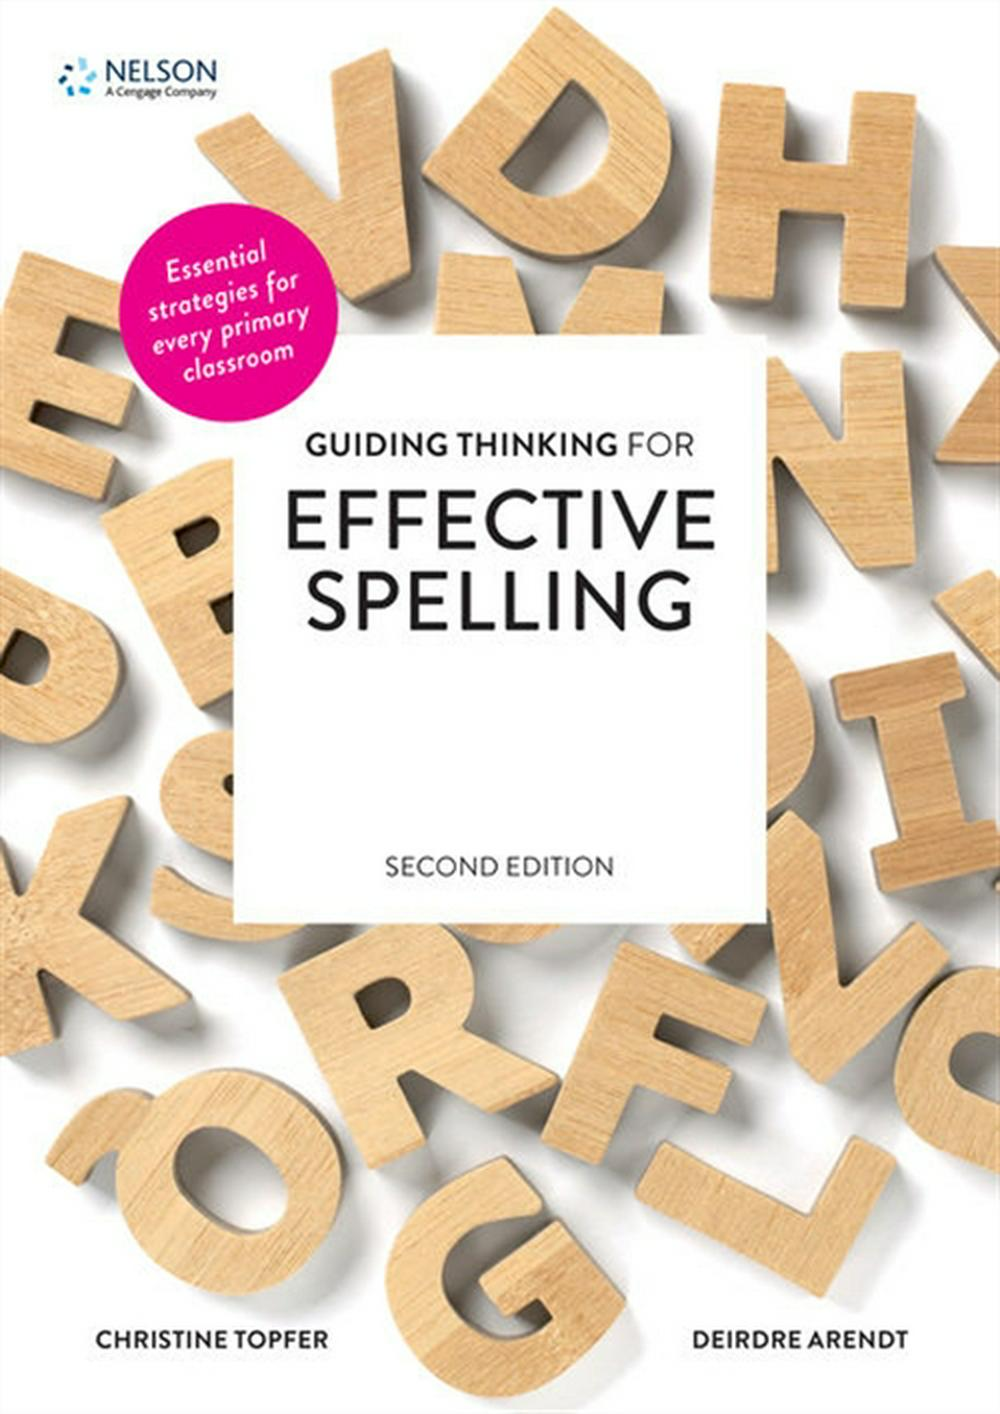 Guiding Thinking for Effective Spelling 2nd Edition